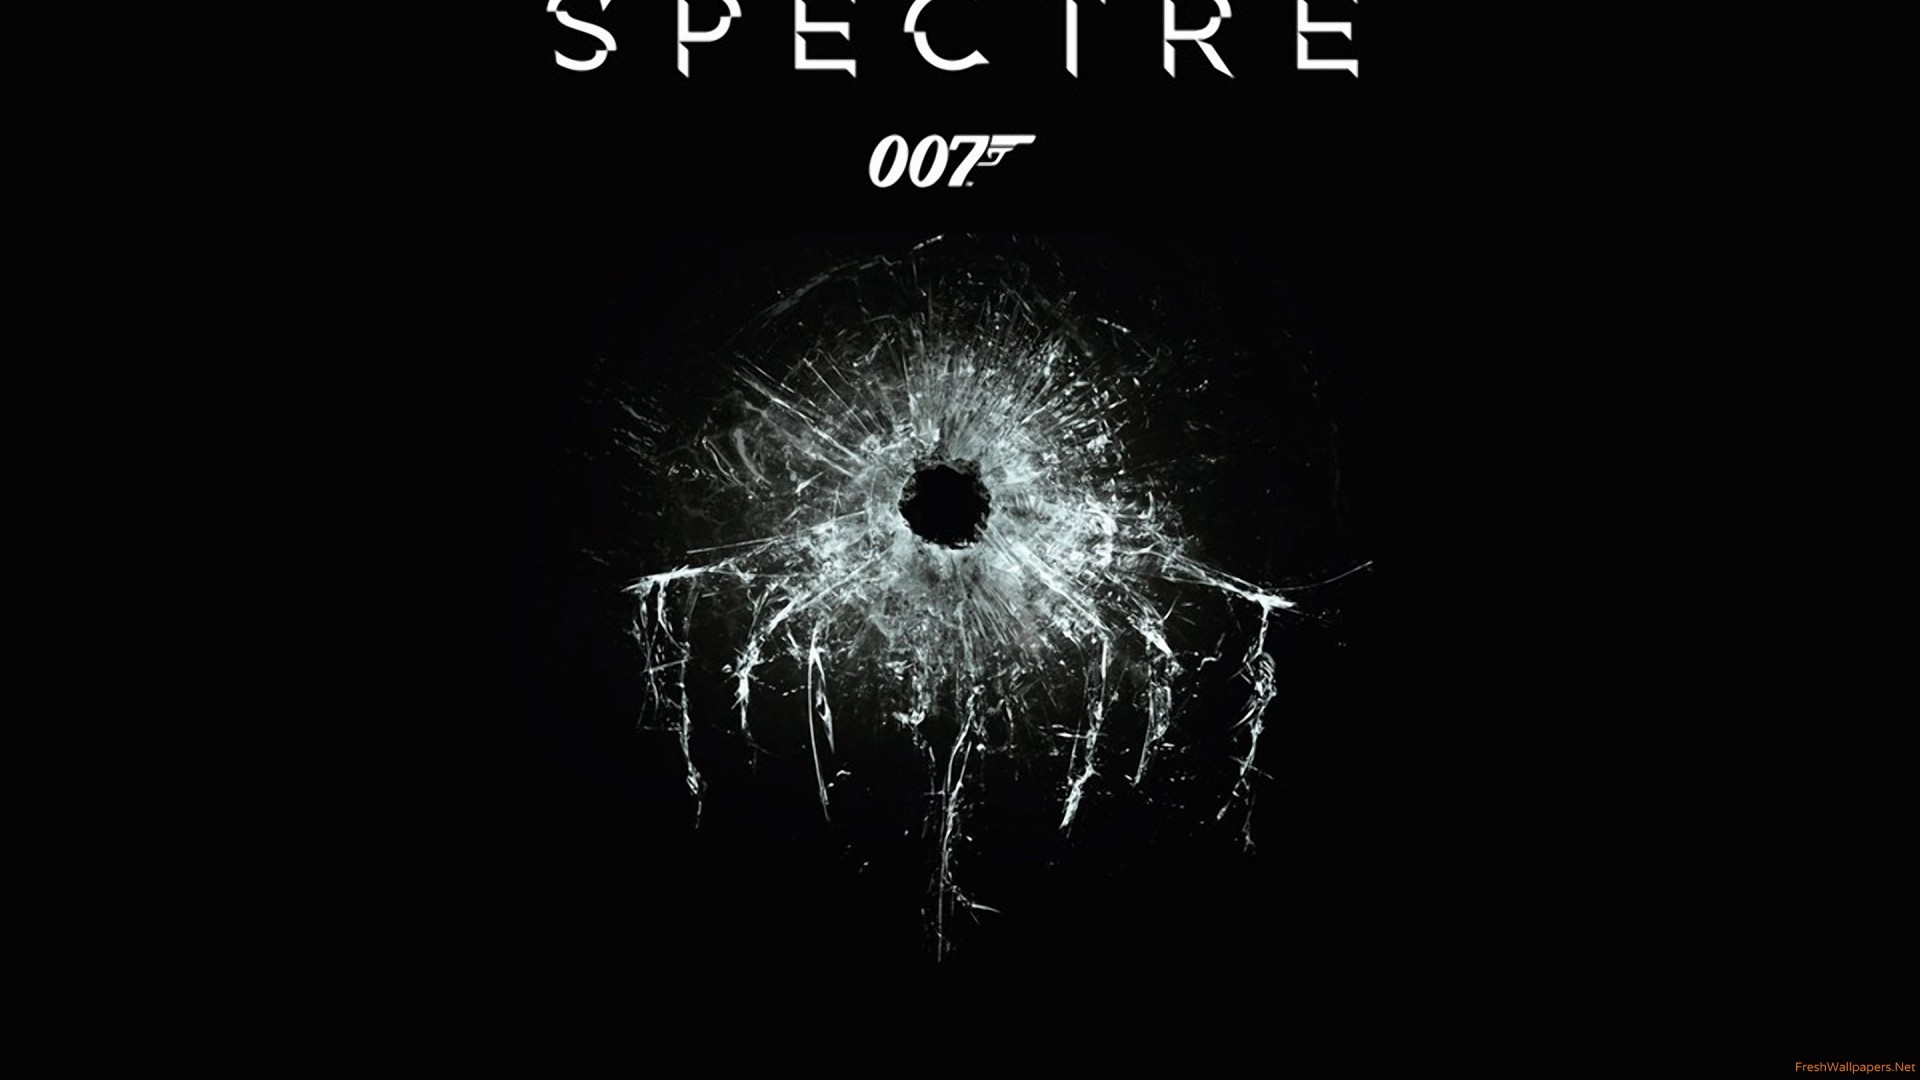 Res: 1920x1080, Spectre Wallpapers 6 - 1920 X 1080